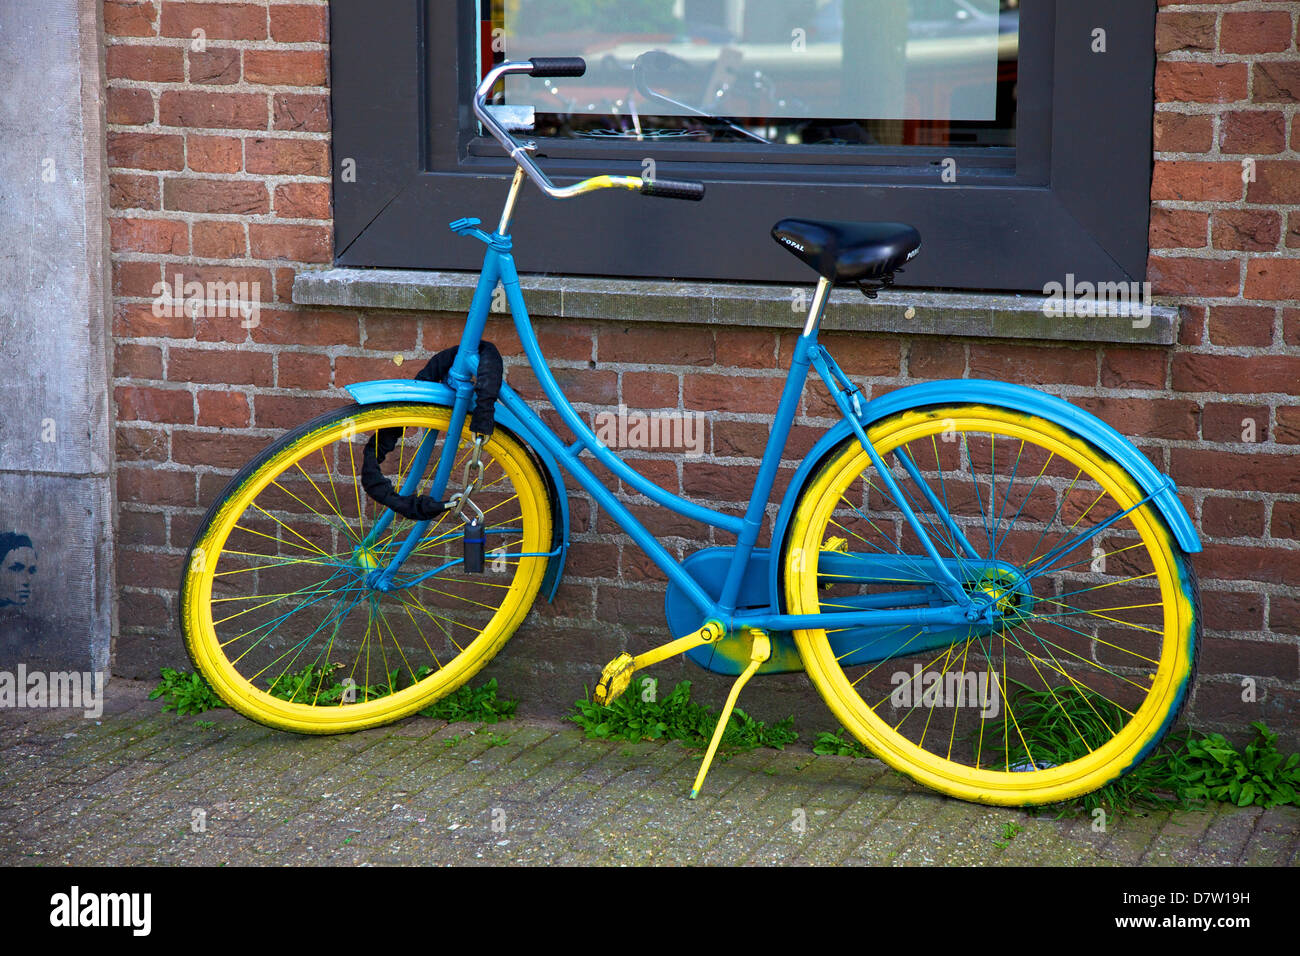 Blue and yellow bicycle, Amsterdam, Netherlands - Stock Image